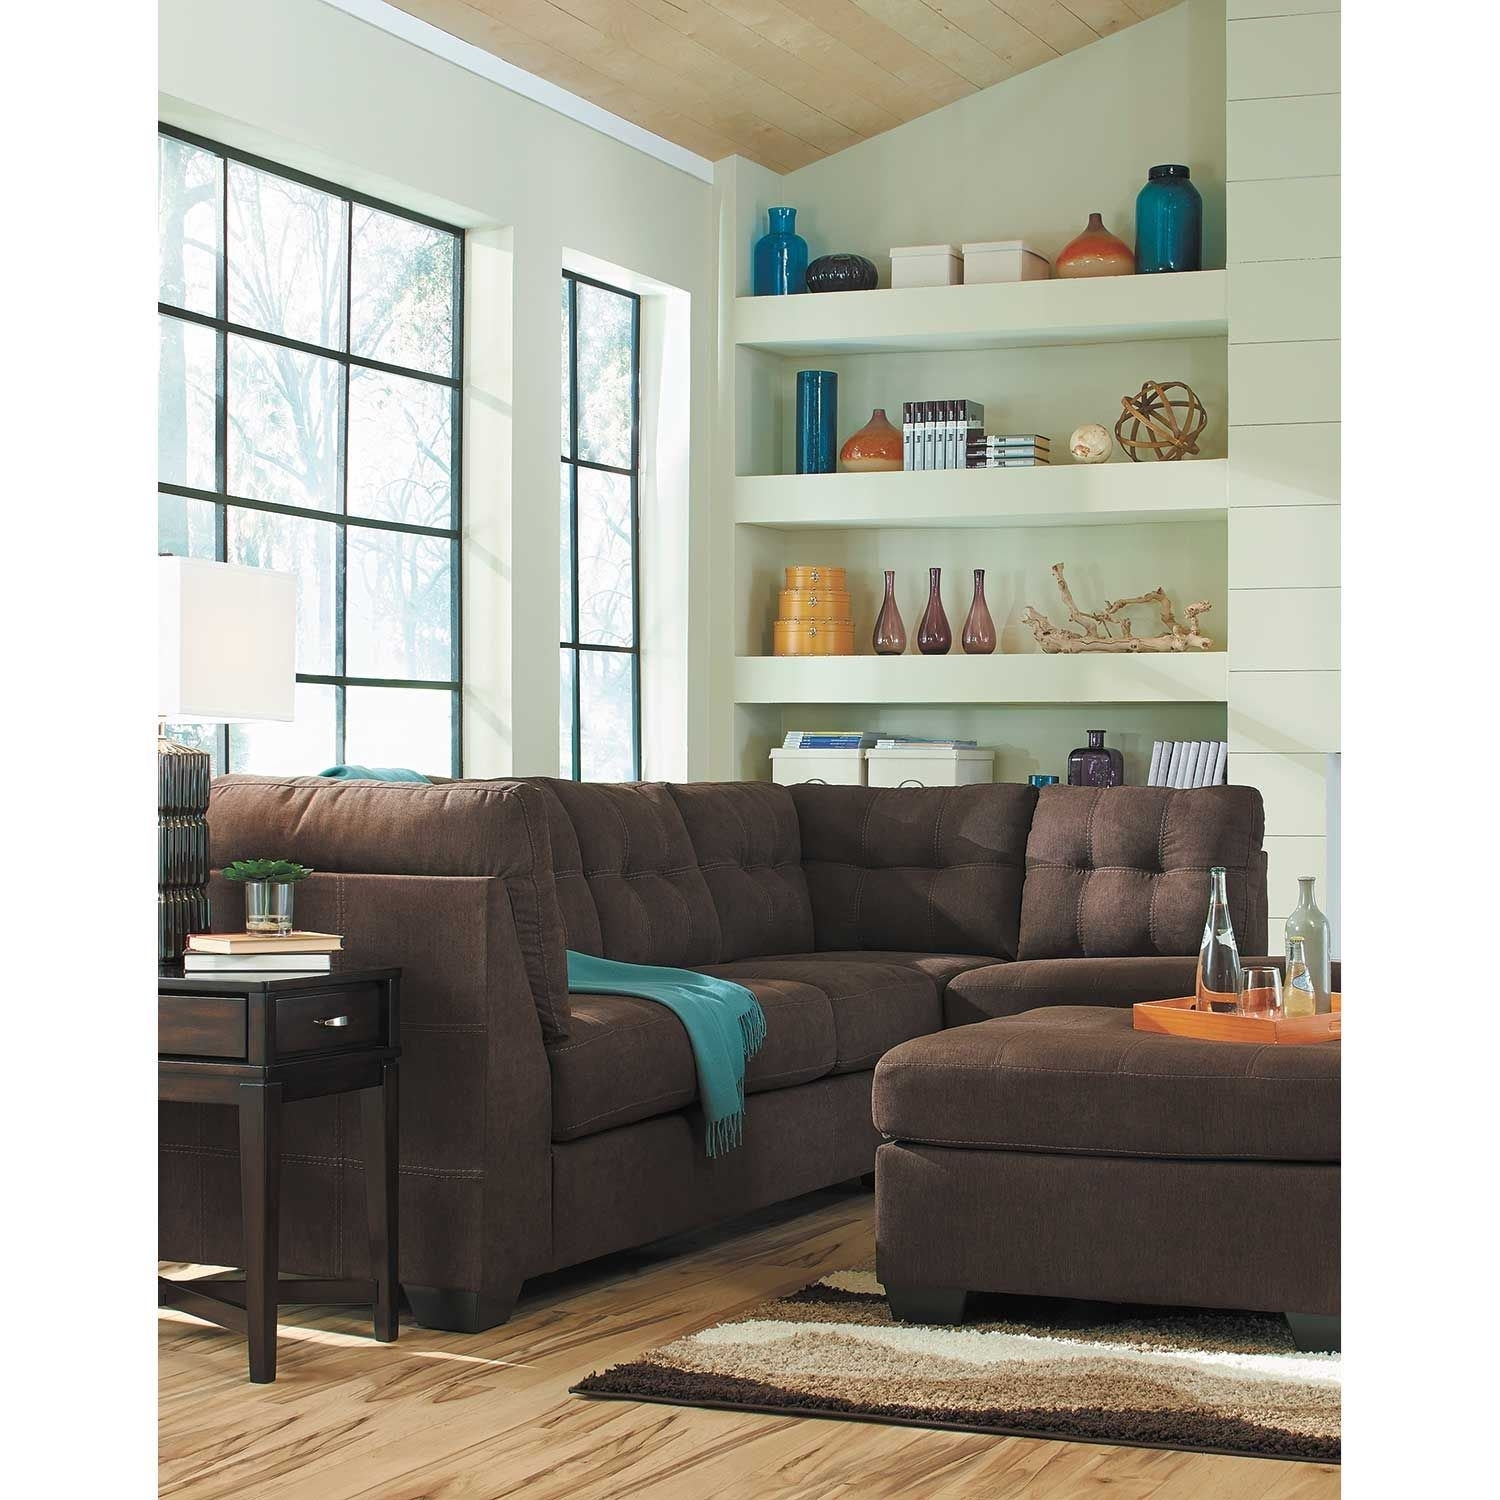 Maier Walnut 2 Piece Sectional With Laf Chaise | 4520116/67 | Ashley Intended For Arrowmask 2 Piece Sectionals With Sleeper & Left Facing Chaise (Image 16 of 25)